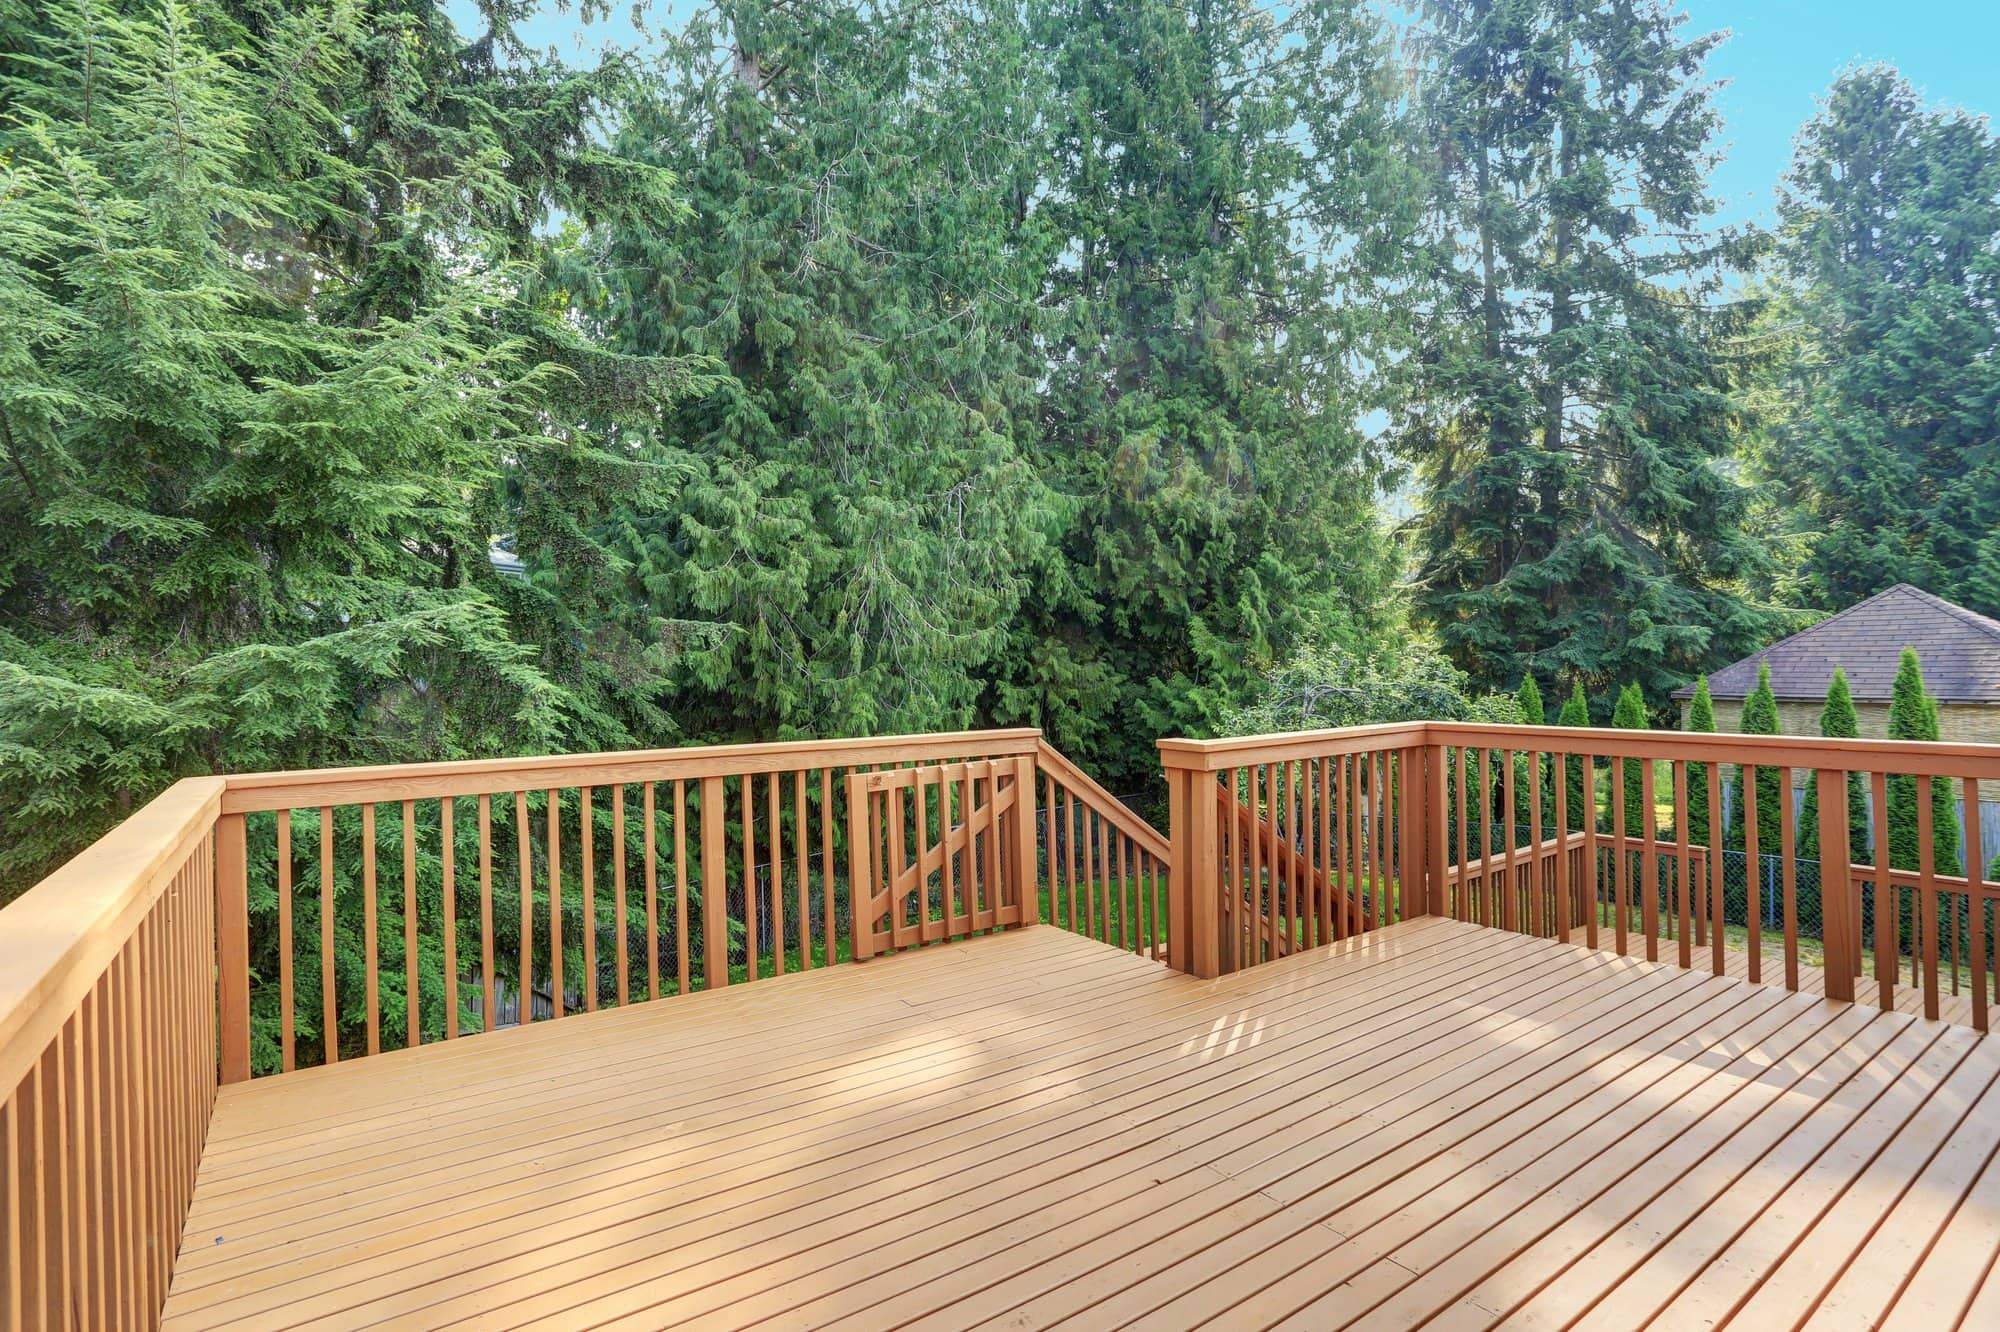 wood deck in a nature setting, eco-friendly wood sealer applied